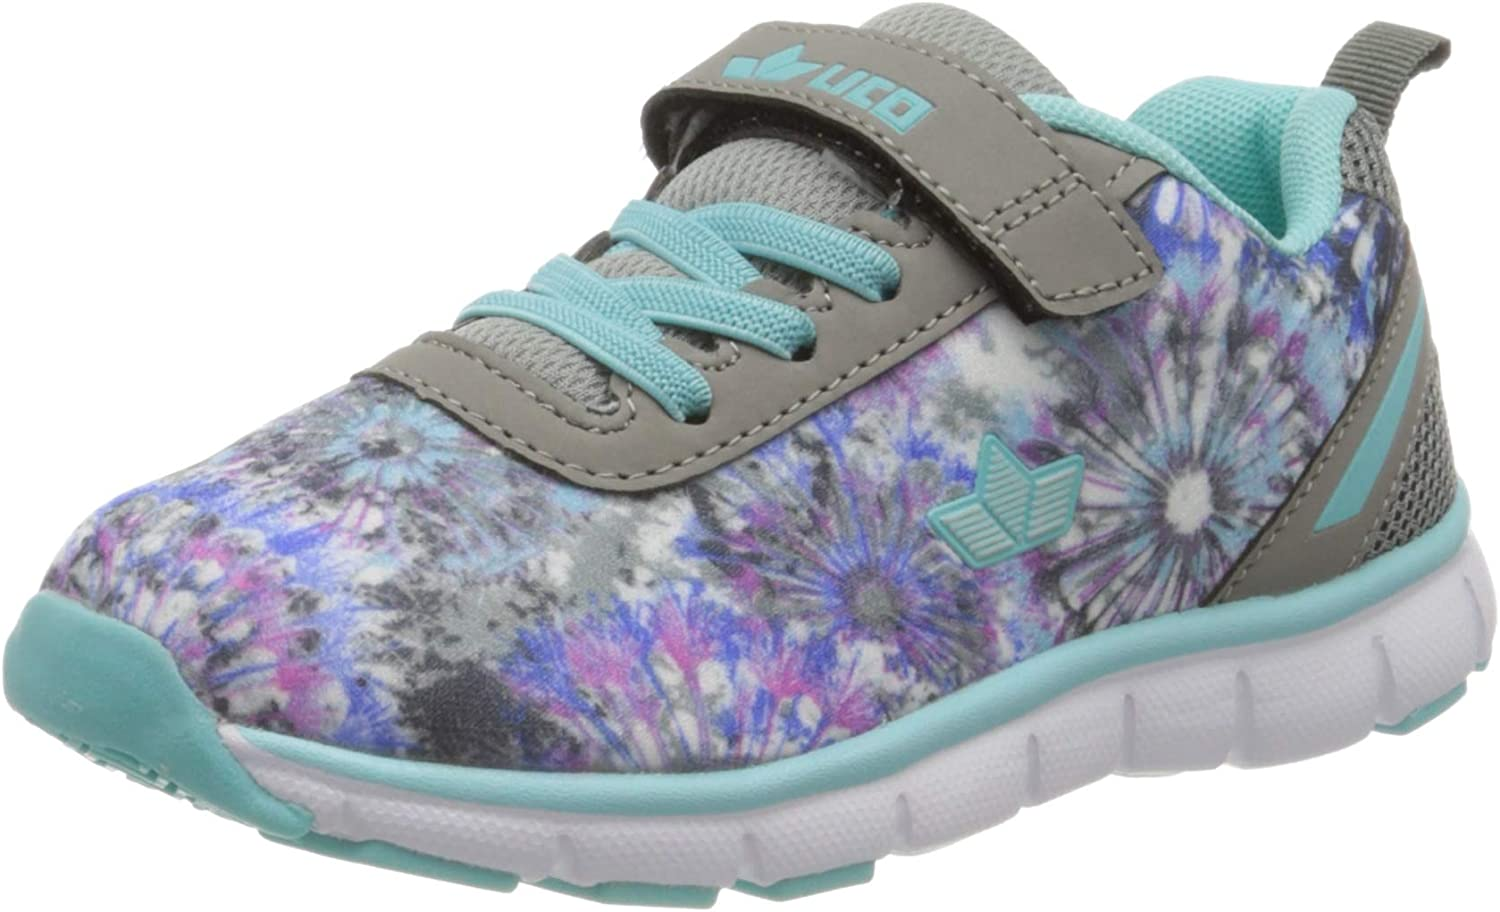 Lico Sunflower Vs, Zapatillas de Marcha Nórdica para Niñas: Amazon.es: Zapatos y complementos